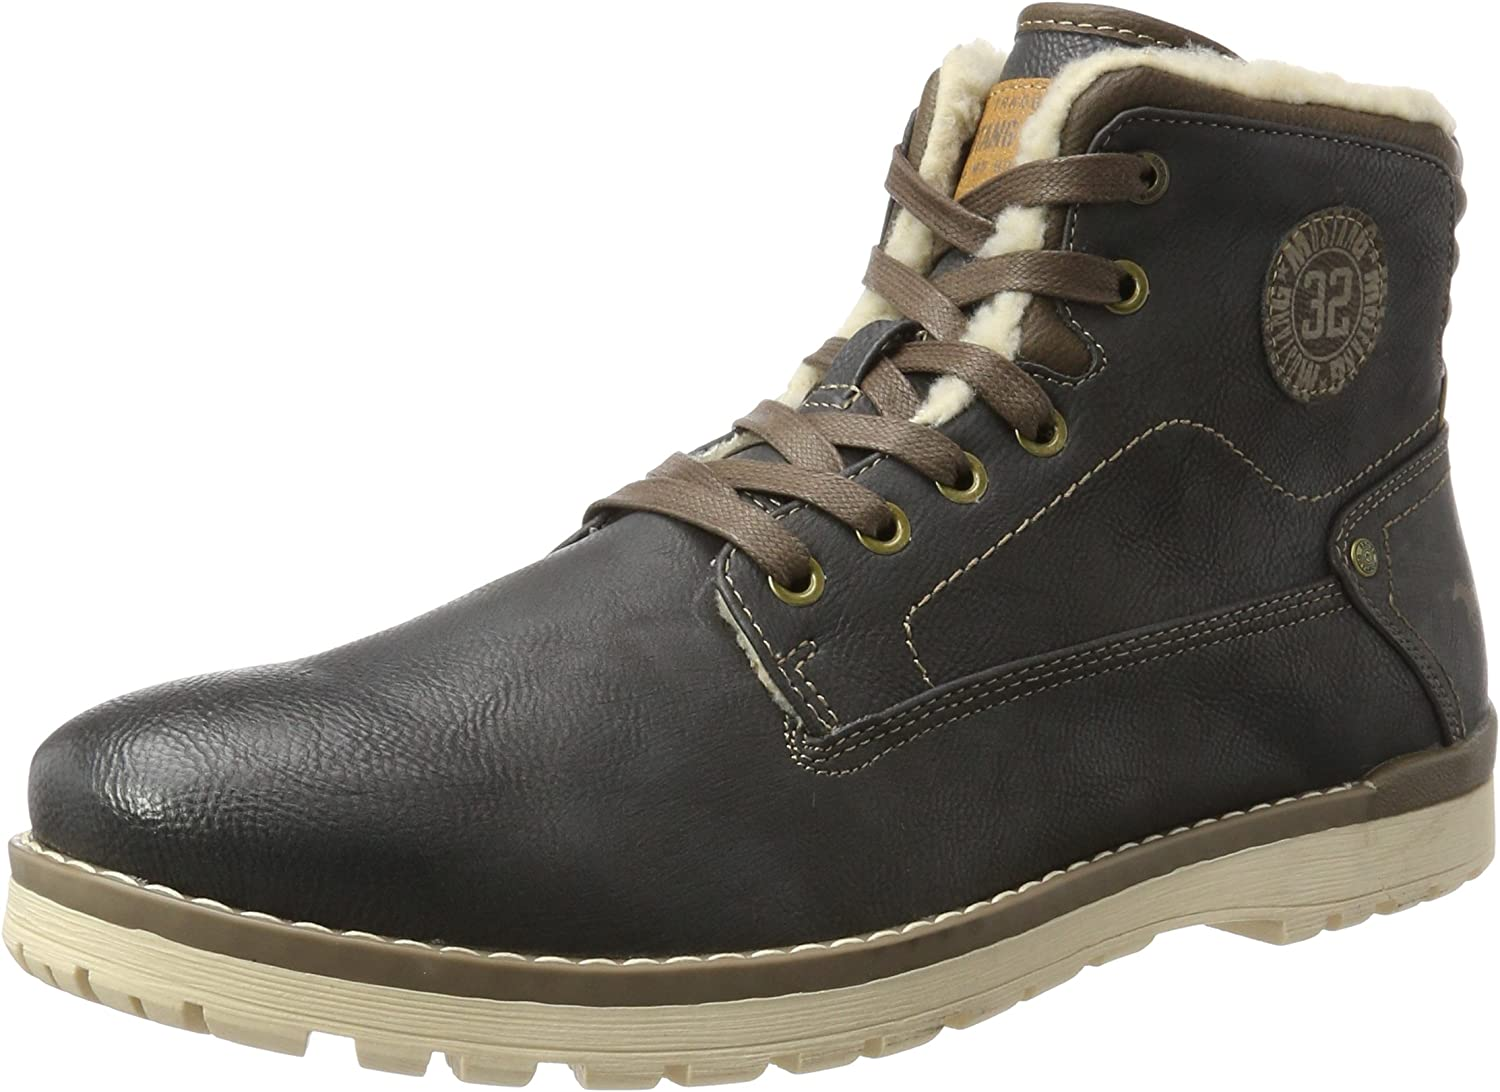 Mustang Men's 4092-602-259 Ankle Boots